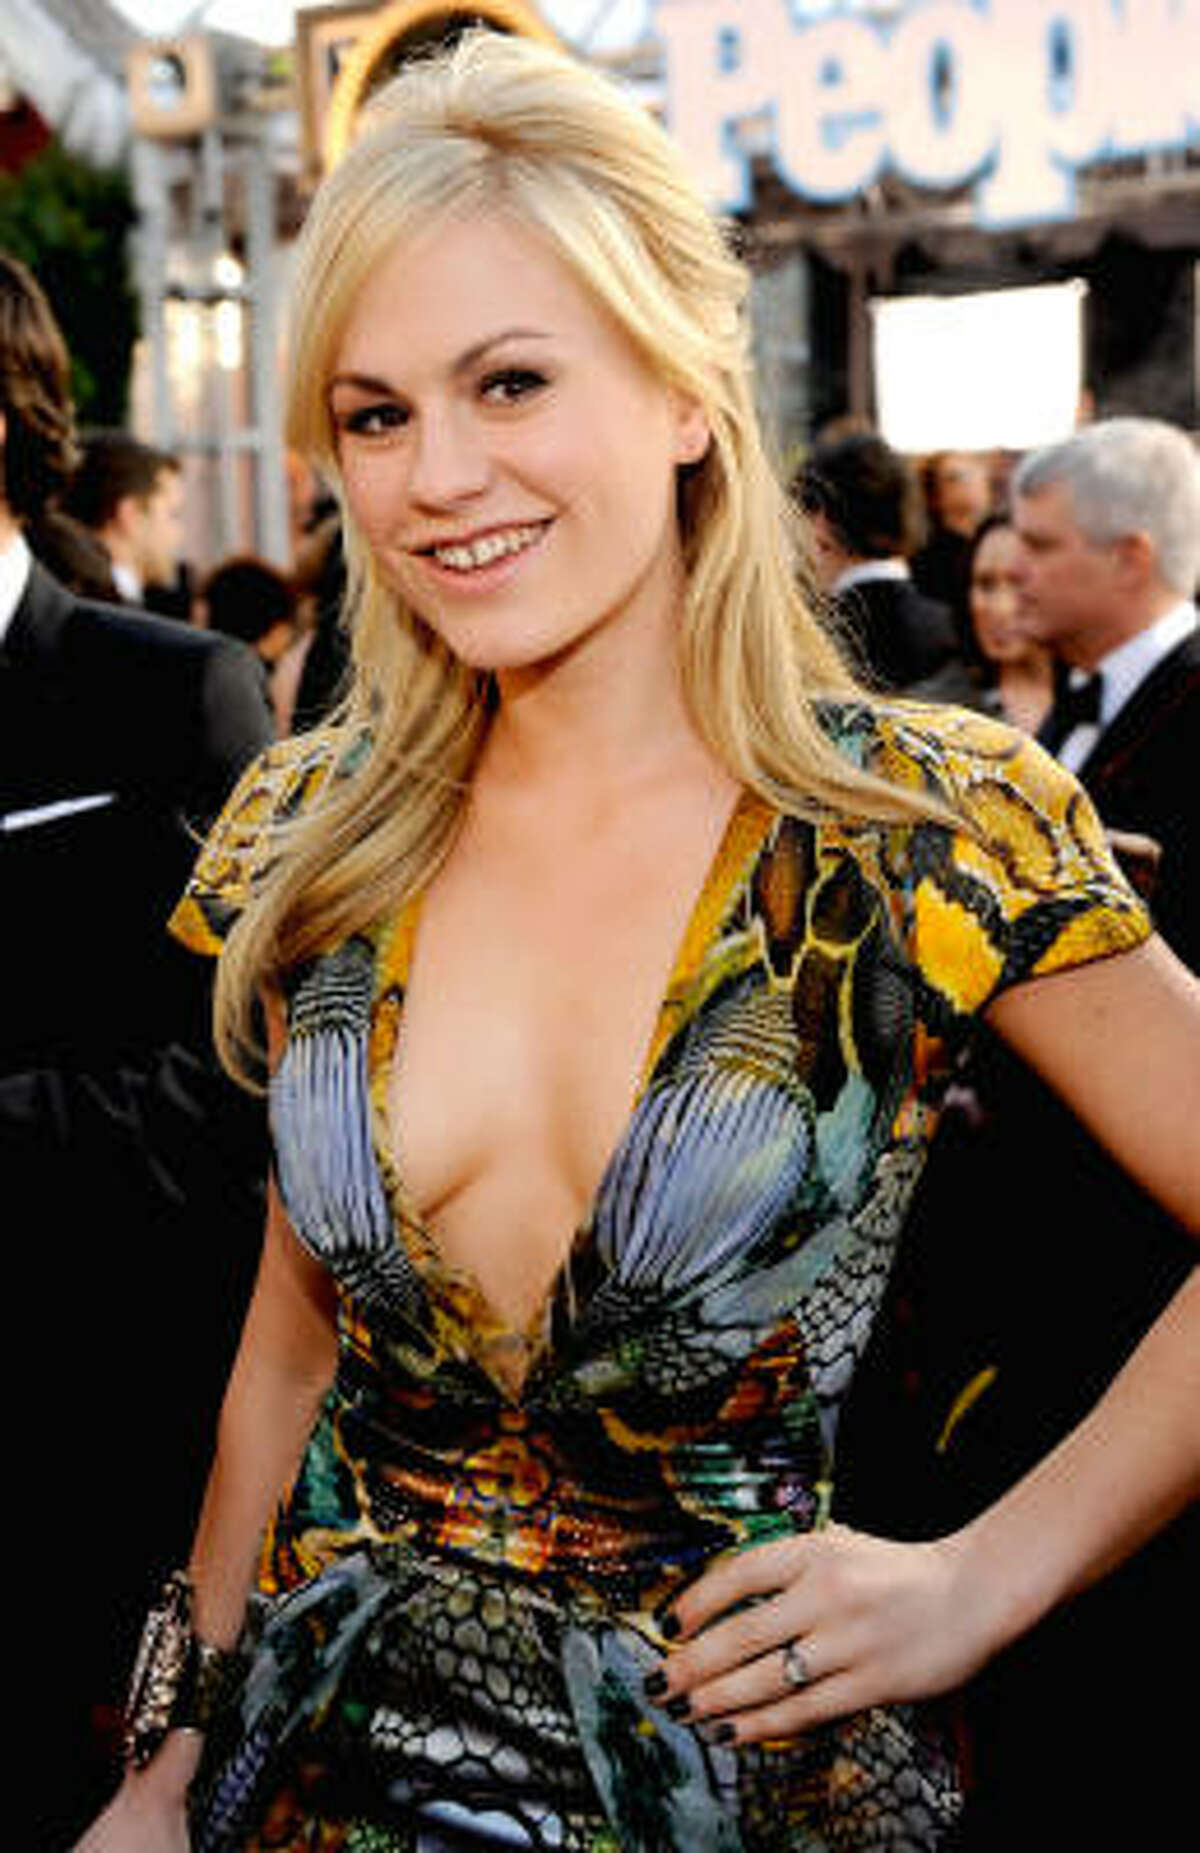 Anna Paquin, the True Blood star, bucked the Hollywood trend and kept her smile.